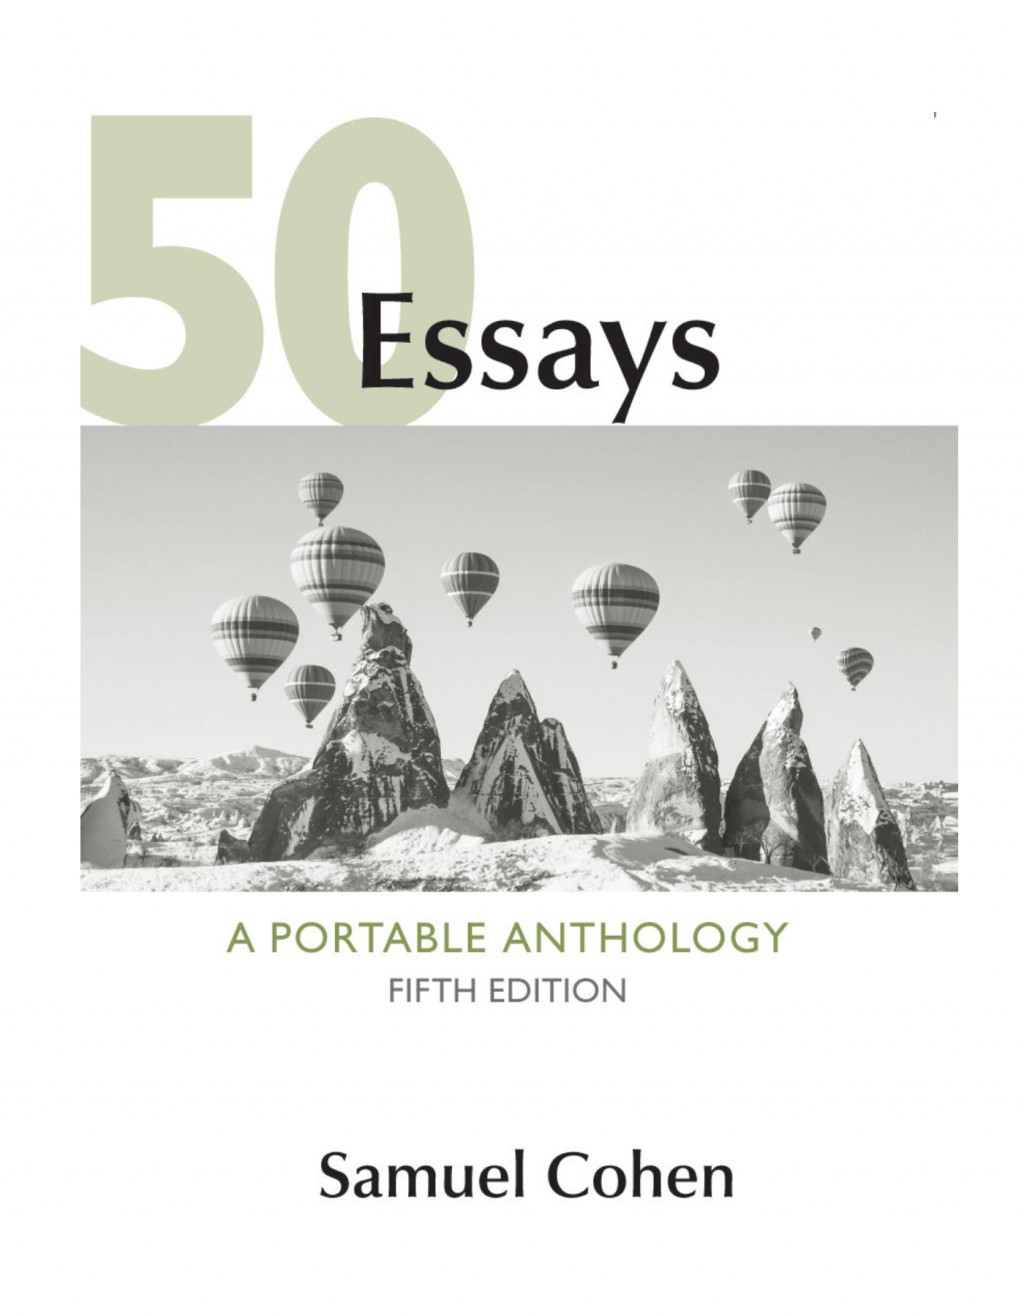 012 50fit14002c1800ssl1 Essay Example Essays Portable Anthology 4th Edition Awful 50 A Pdf Free Large